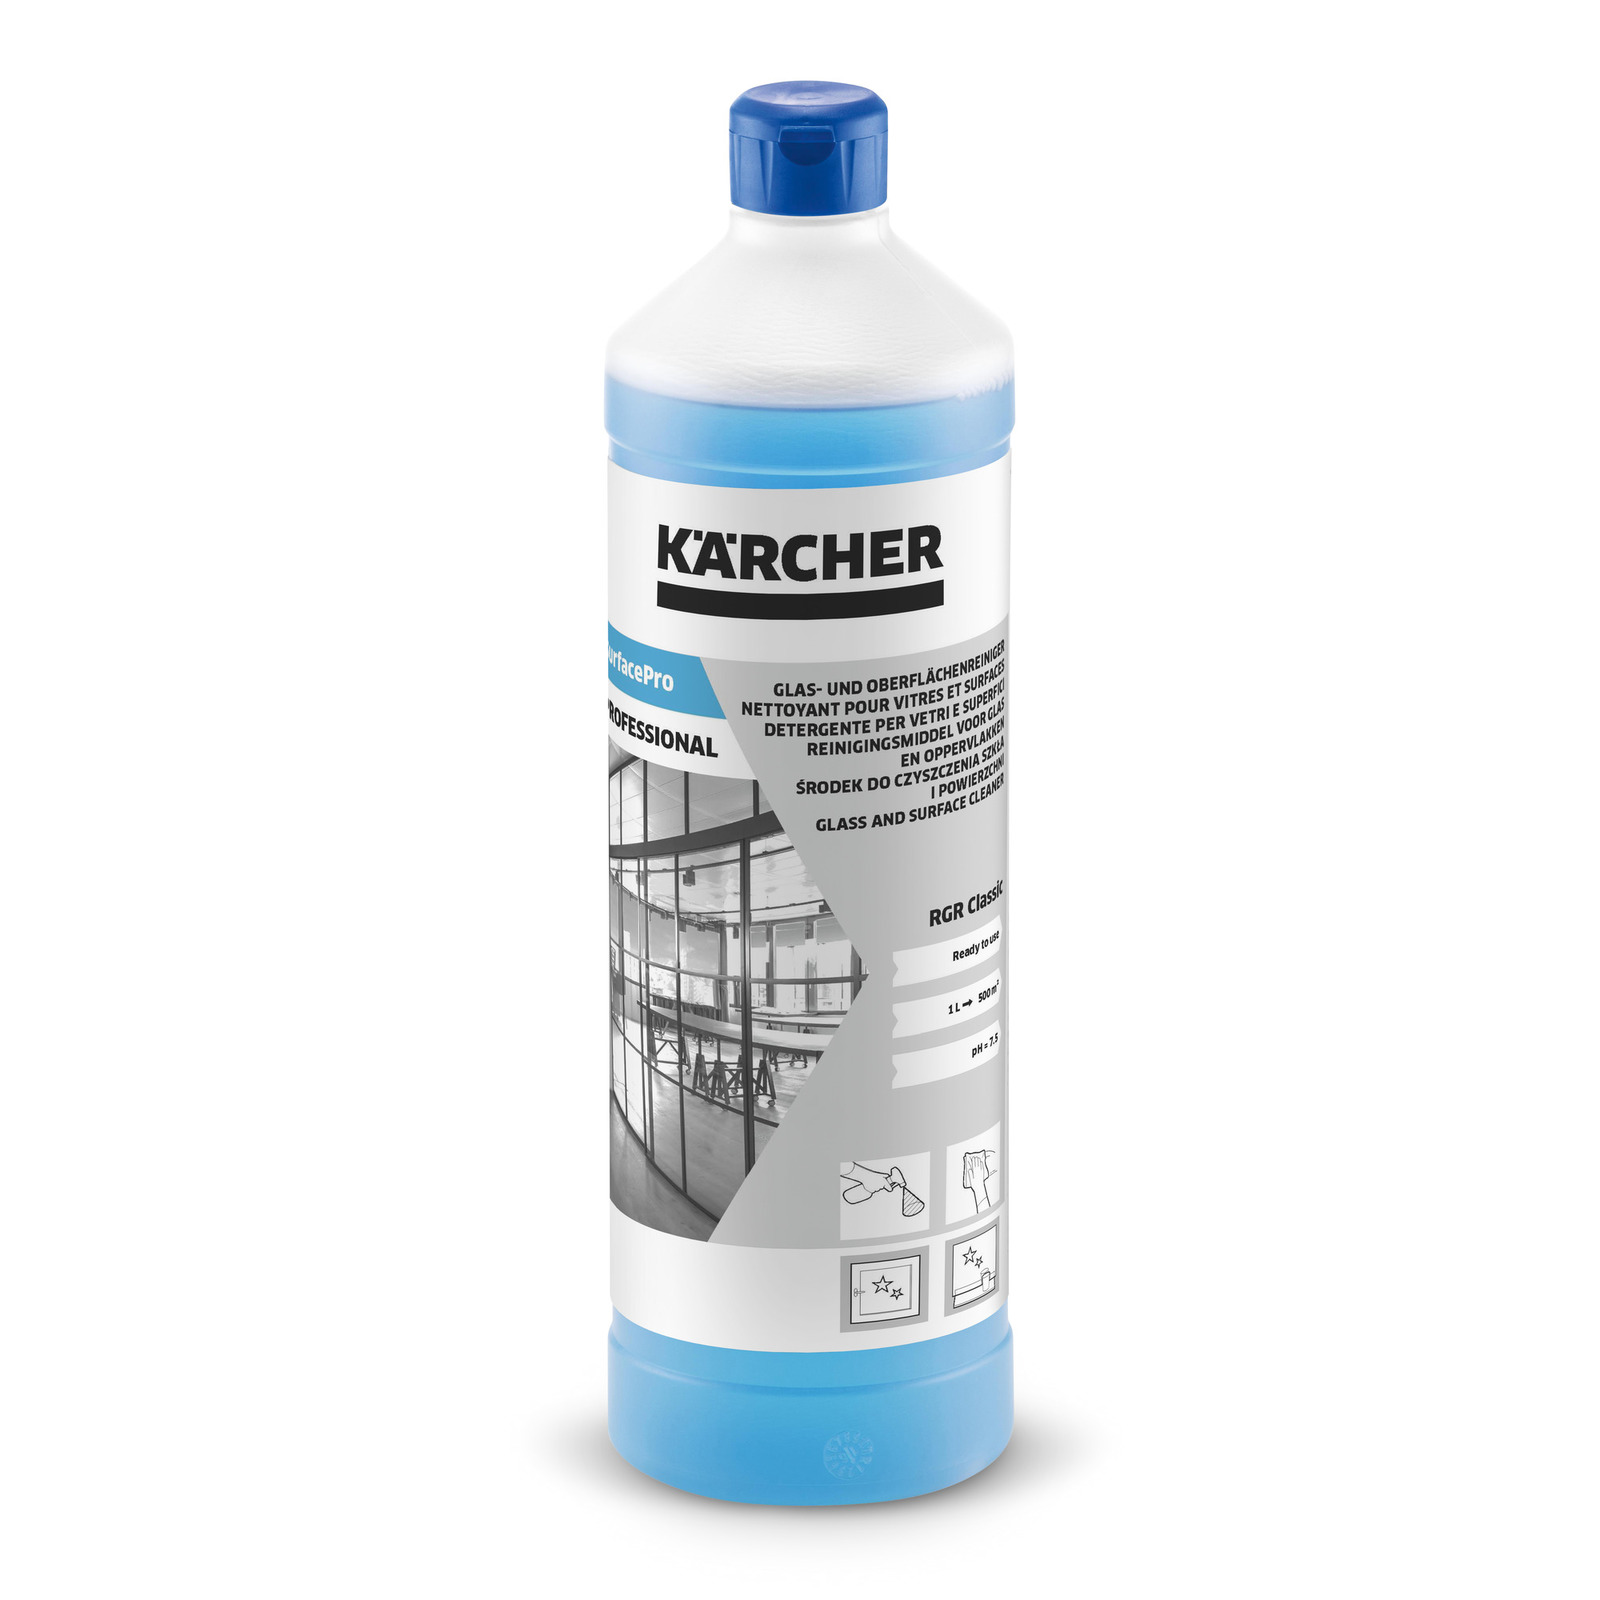 Tache De Suie Surfacepro Rgr Classic Glass And Surface Cleaner 1 L Kärcher